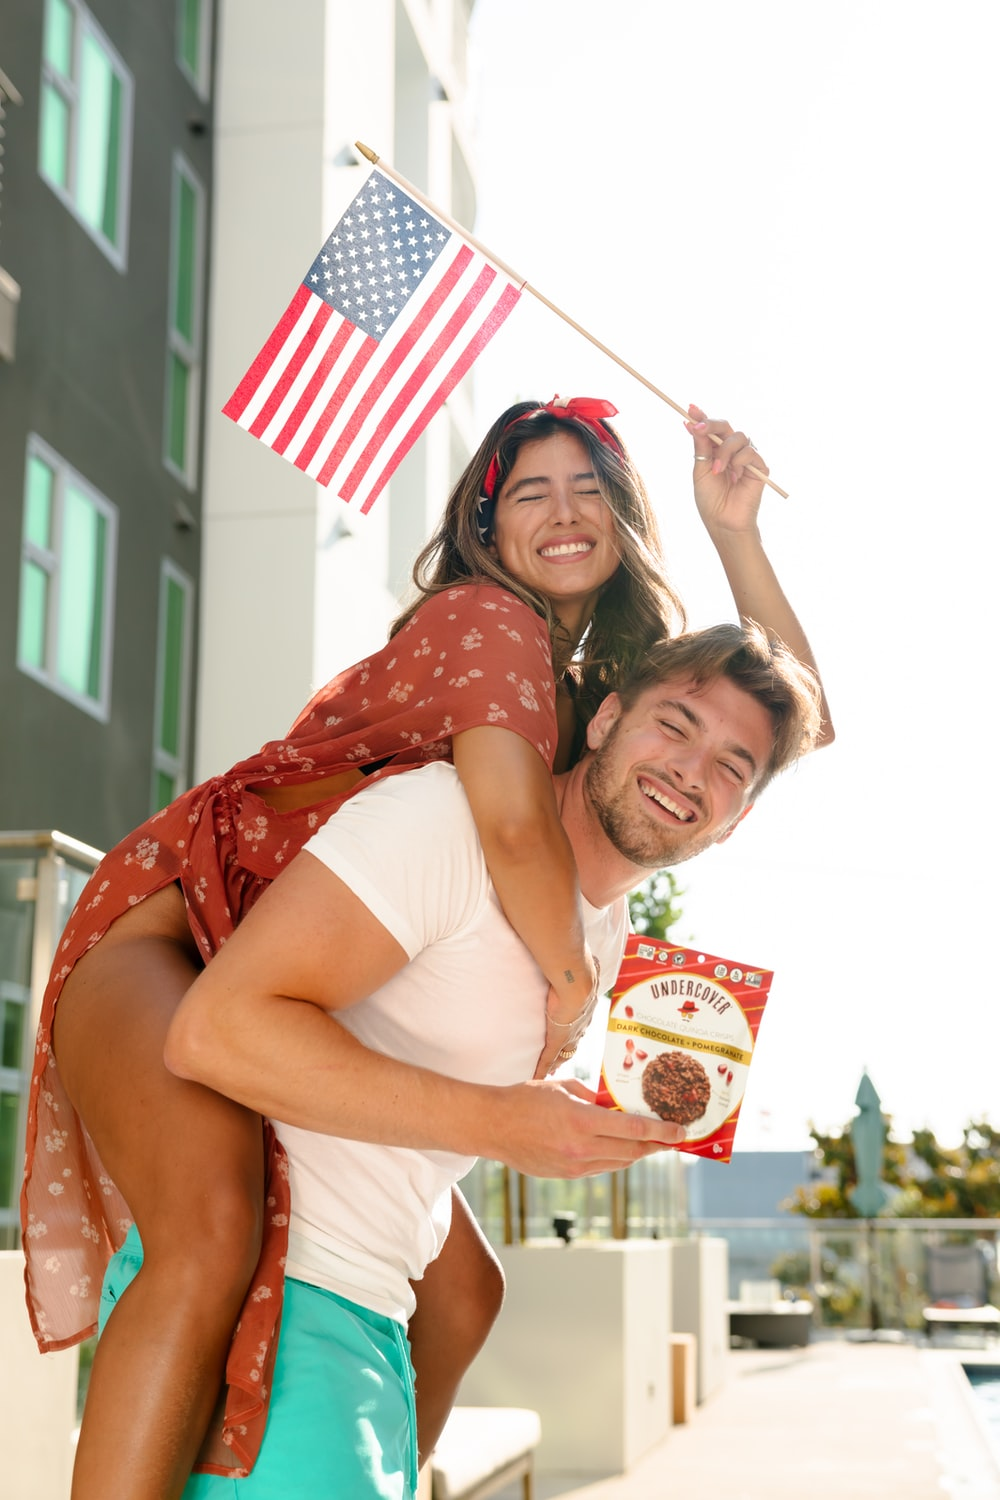 2 women smiling and standing near white and red flag during daytime